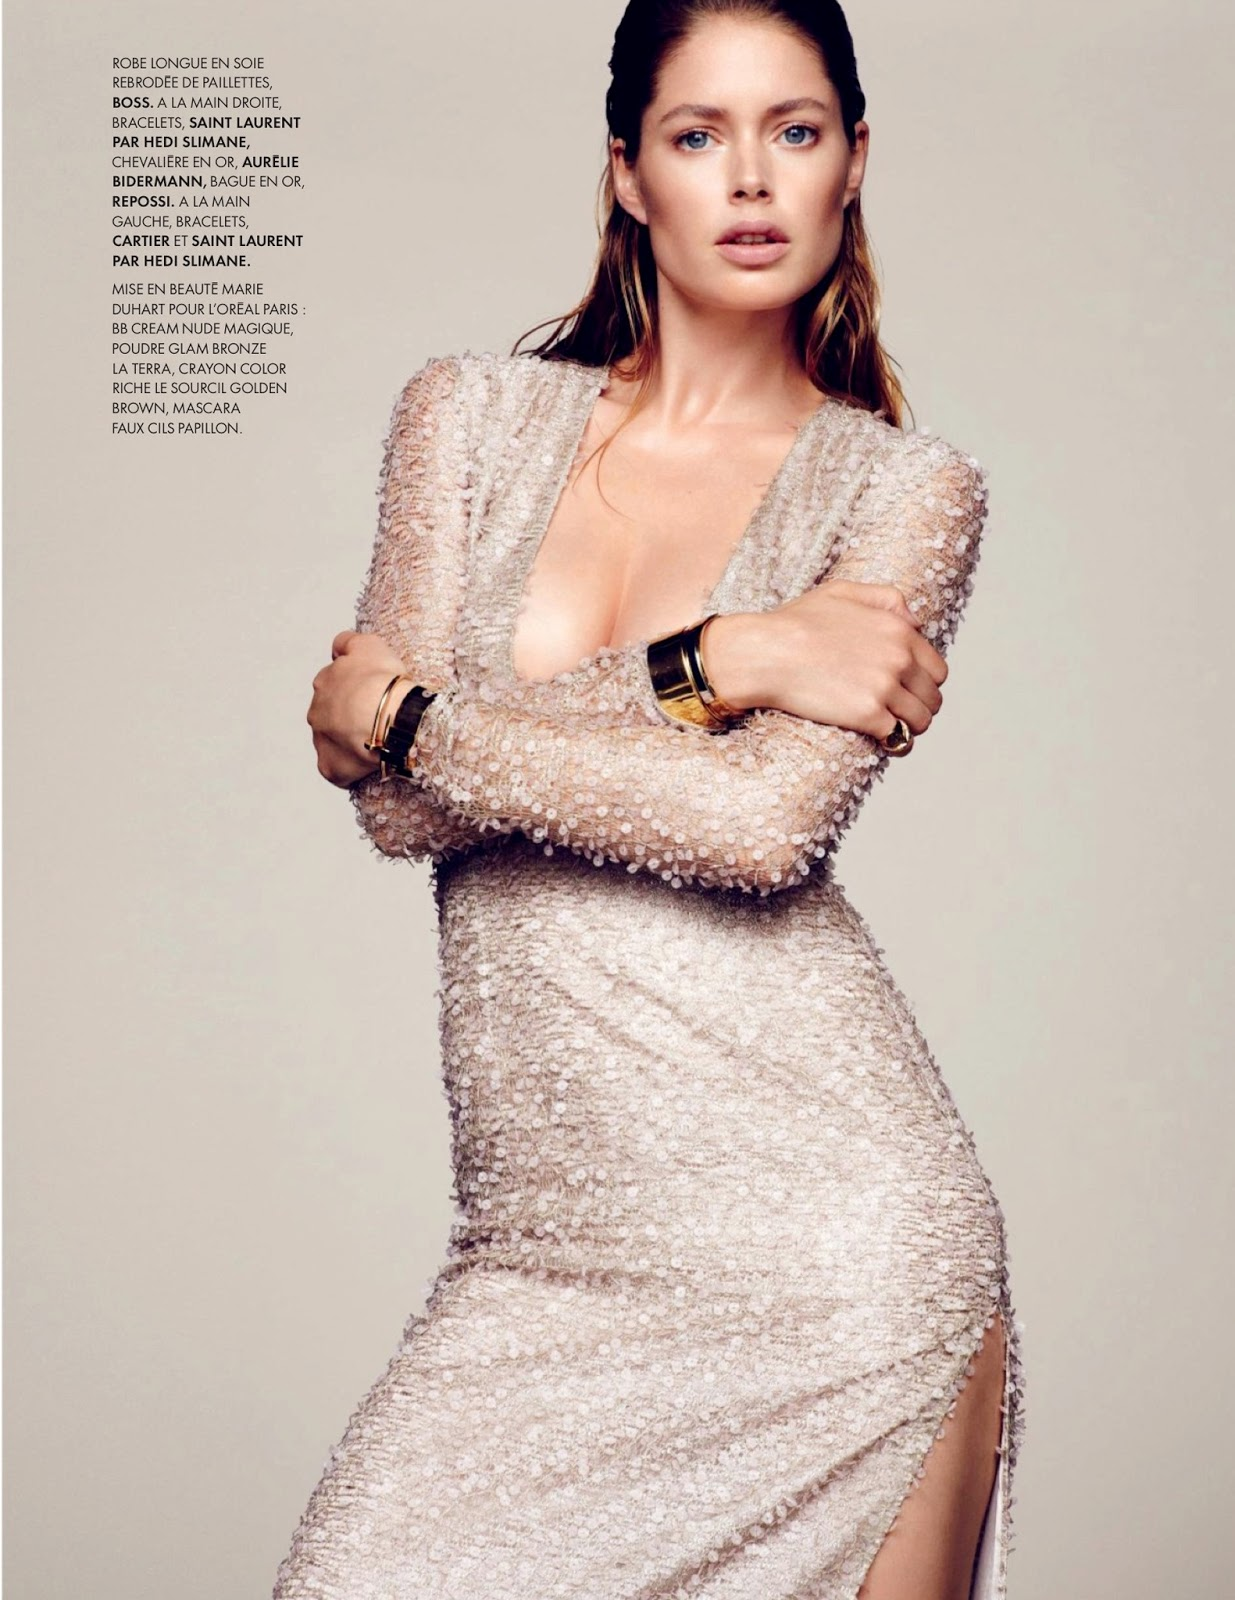 fashion_scans_remastered-doutzen_kroes-elle_france_1-issue_3531-scanned_by_vampirehorde-hq-5.jpg